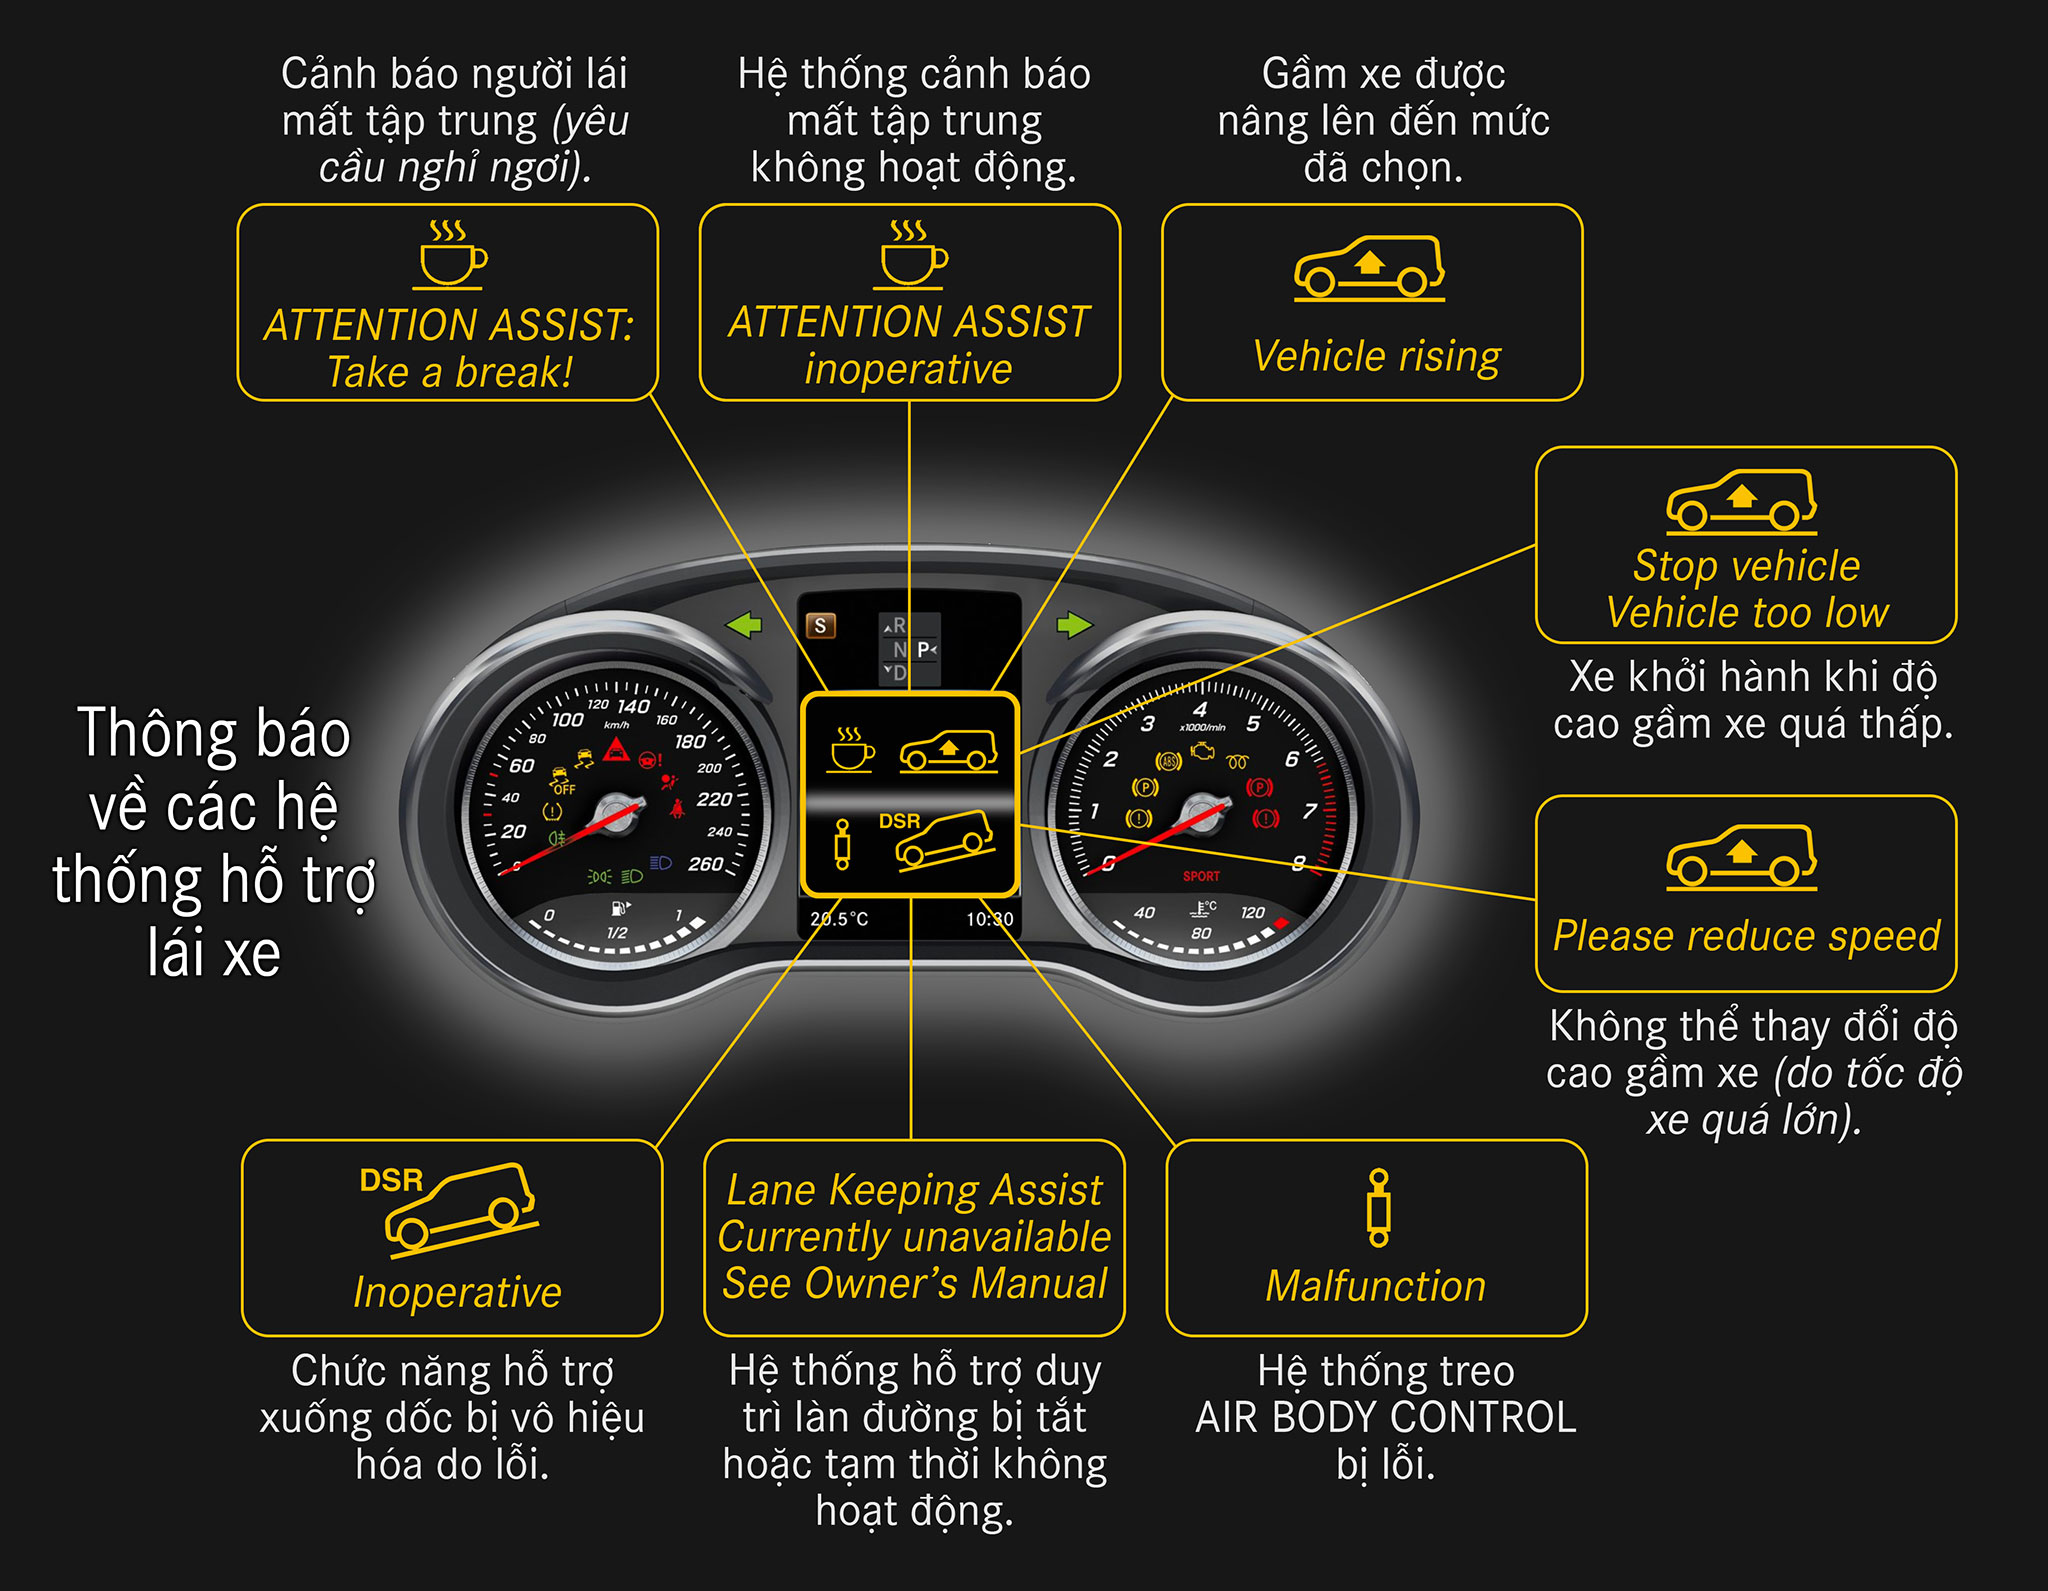 mercedes-warnings-07.jpg